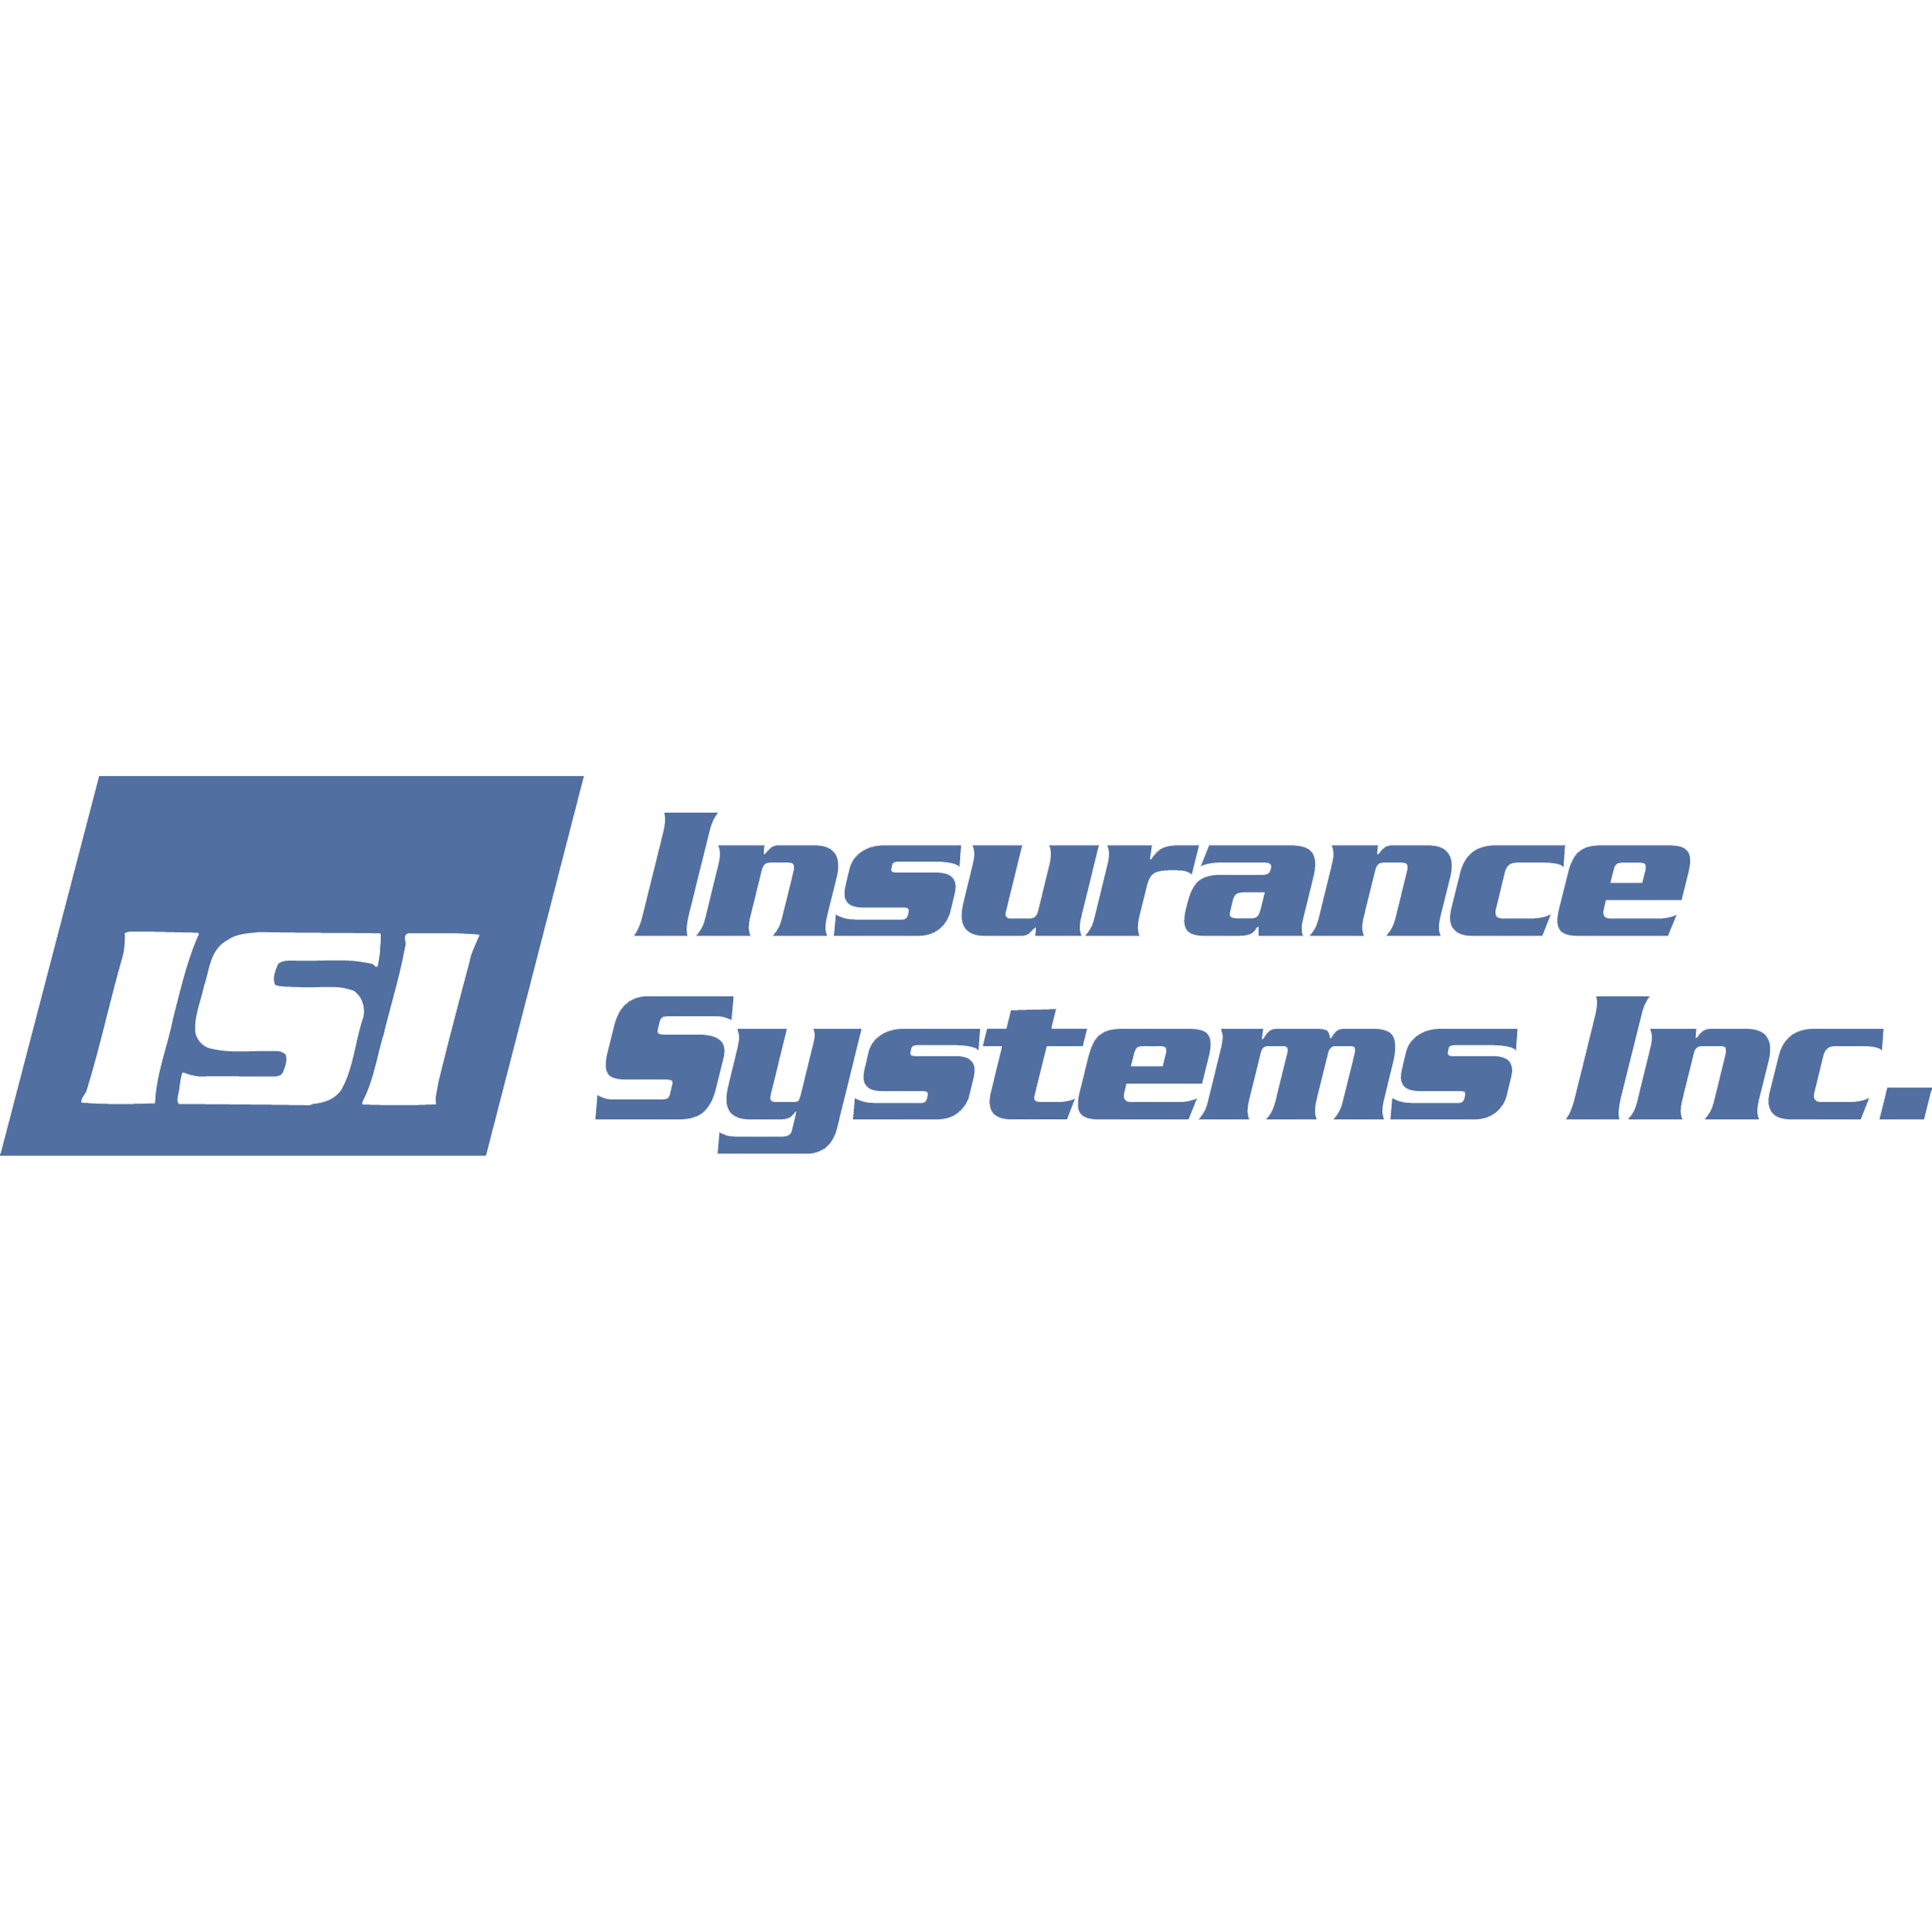 Insurance Systems Inc